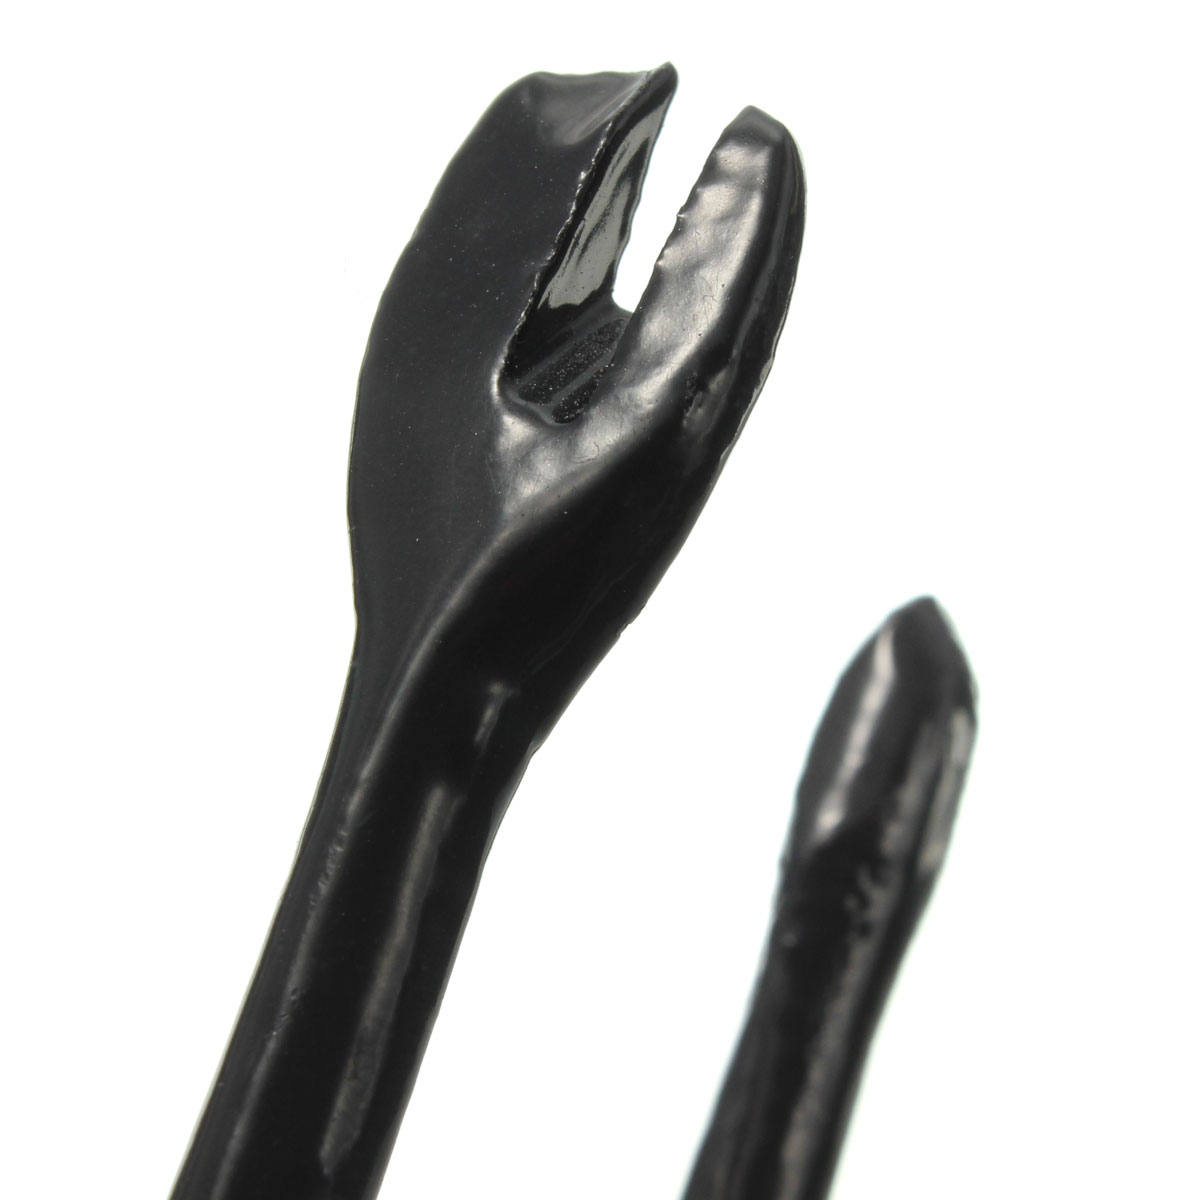 High Heel Dowel Stiletto Remove Pliers Repair Iron Tool